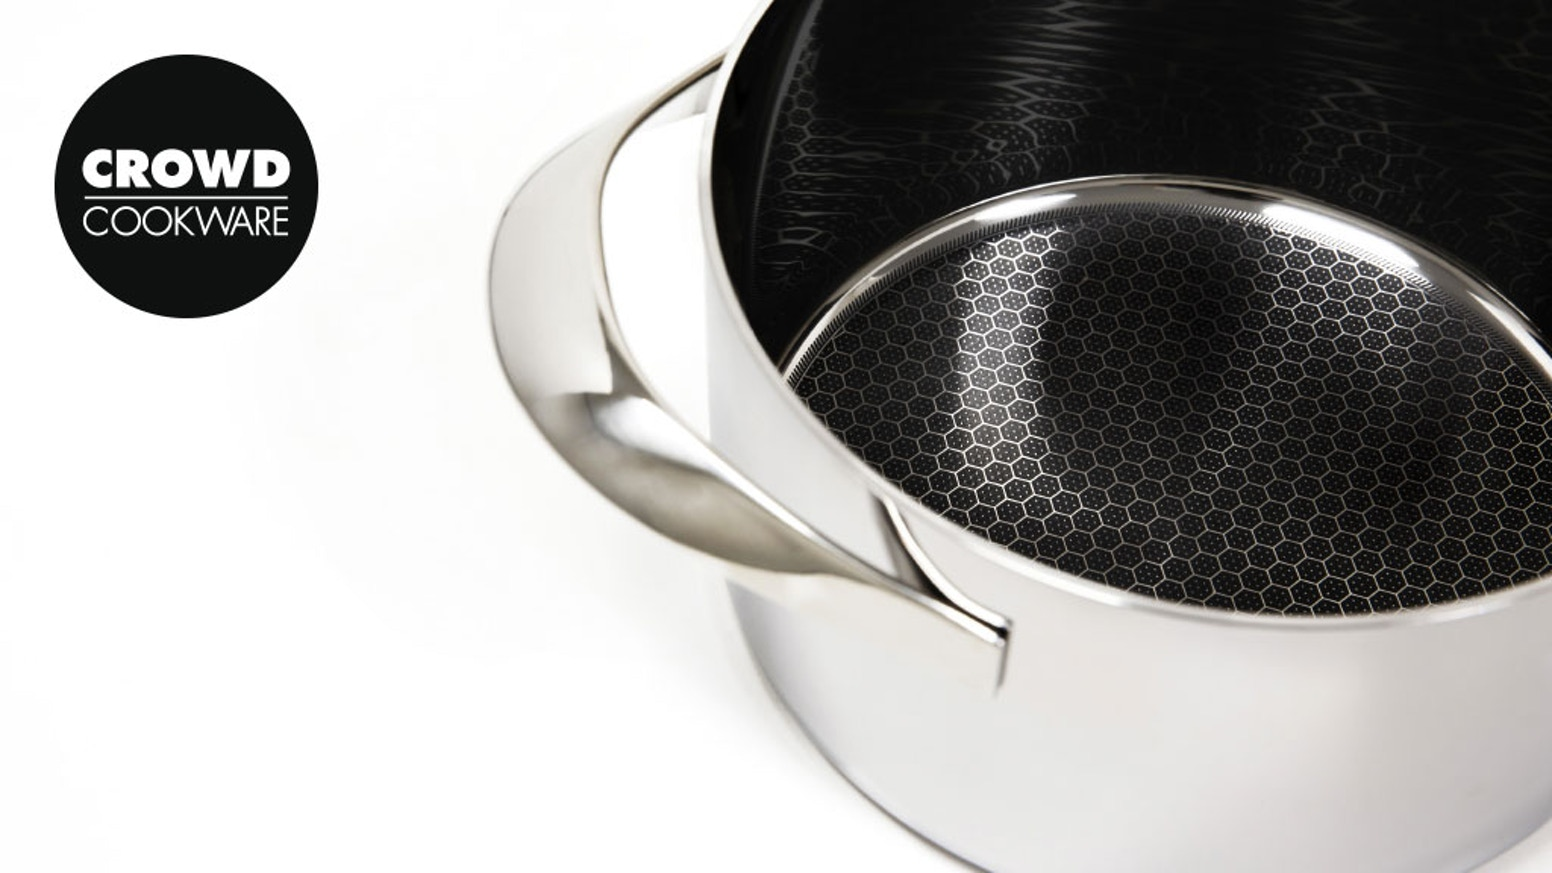 A new hack. A complete cookware set of the chef's essentials. Based on our crowd's wishes. For a fair price.